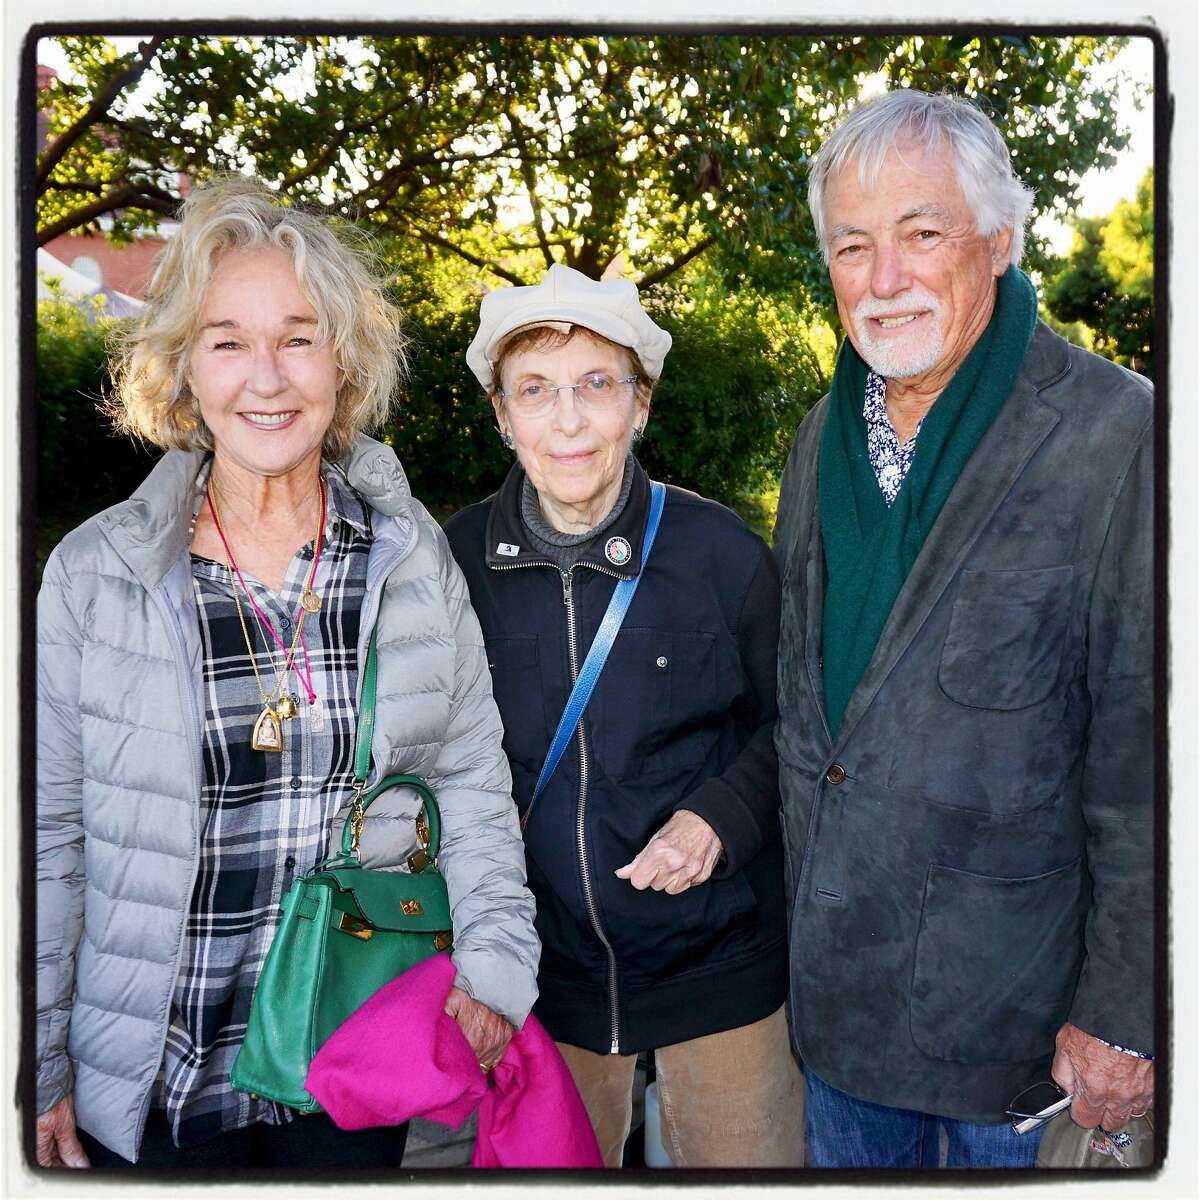 Susie Buell (left) with parks conservationist Amy Meyer and St. Mark of the Parks Buell at the Trails Forever Dinner. Sept. 23. 2017.